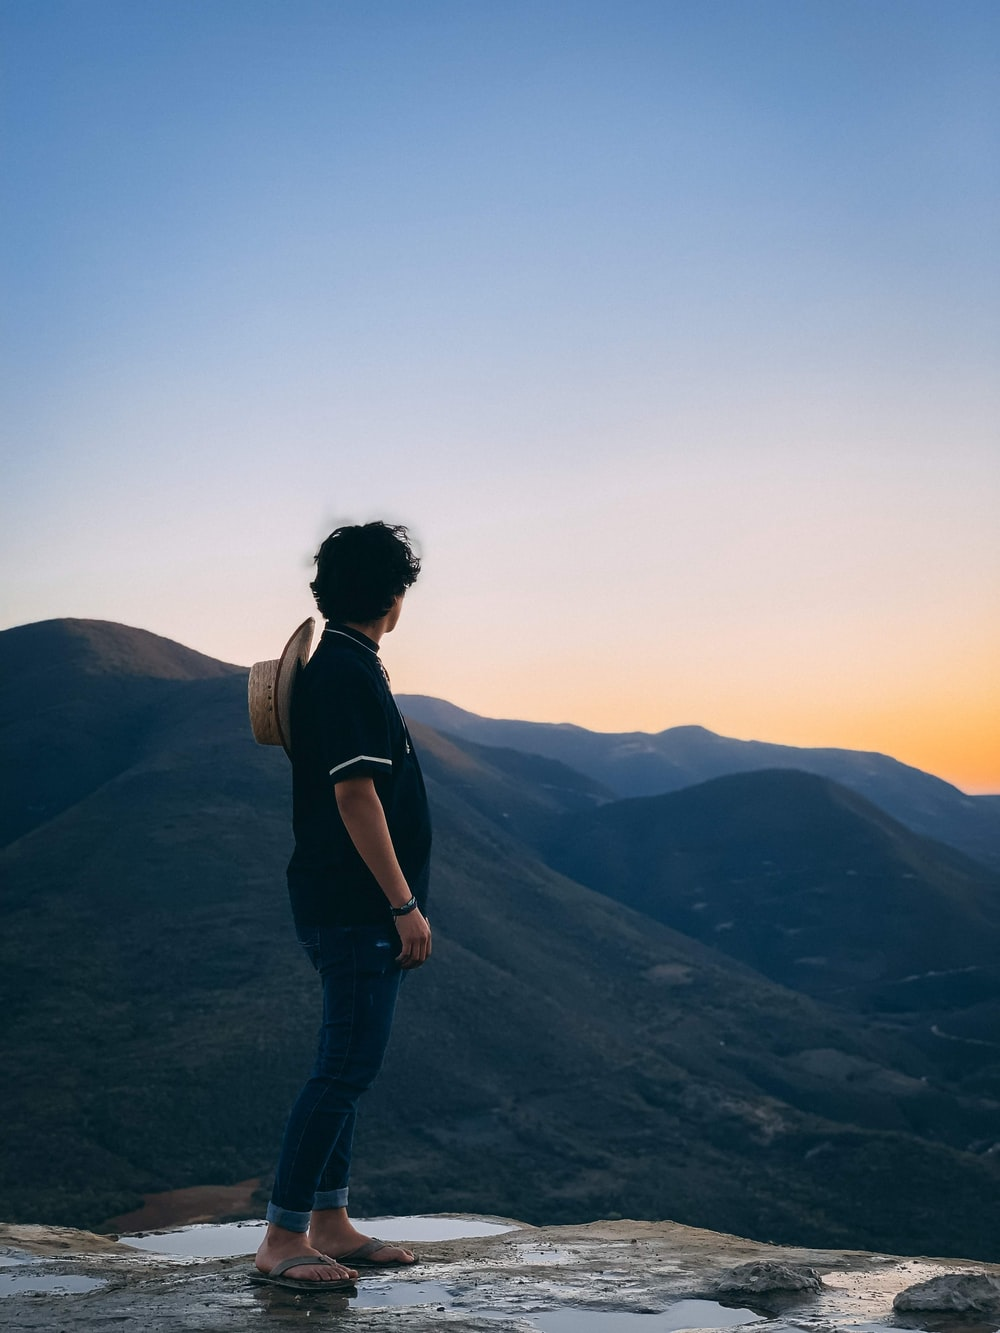 man standing on rocky hill facing mountain